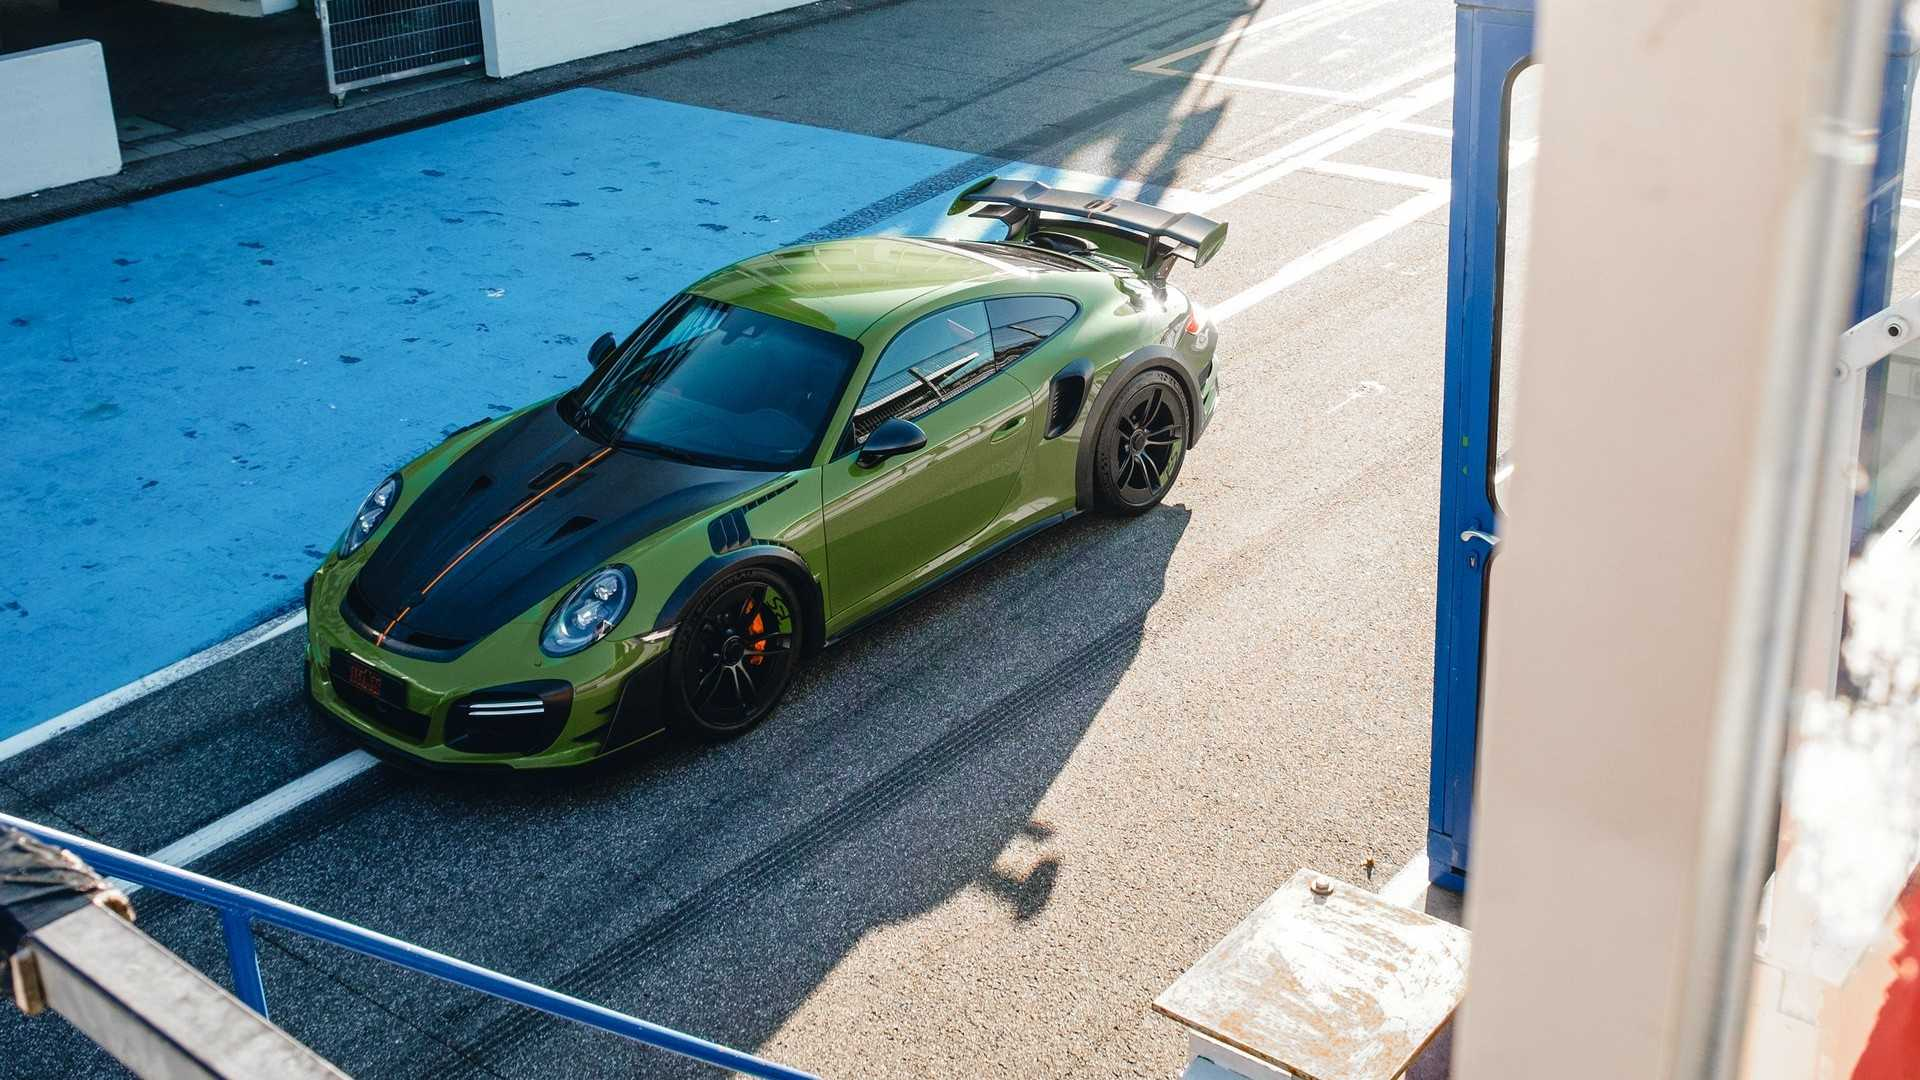 Techart Gt Street Rs Arrives In Geneva As Forged Carbon 991 Turbo